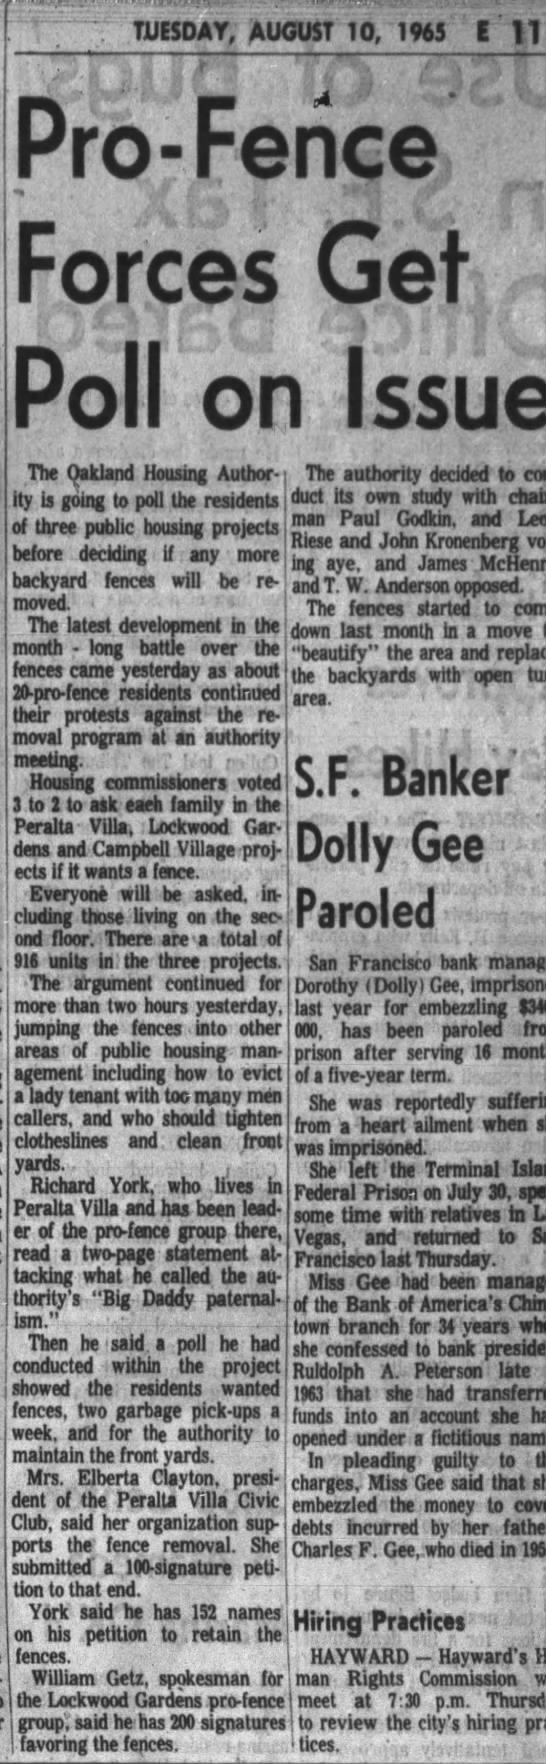 Pro-Fence Forces Get Poll on the Issue - Oakland Tribune Aug 10, 1965 -